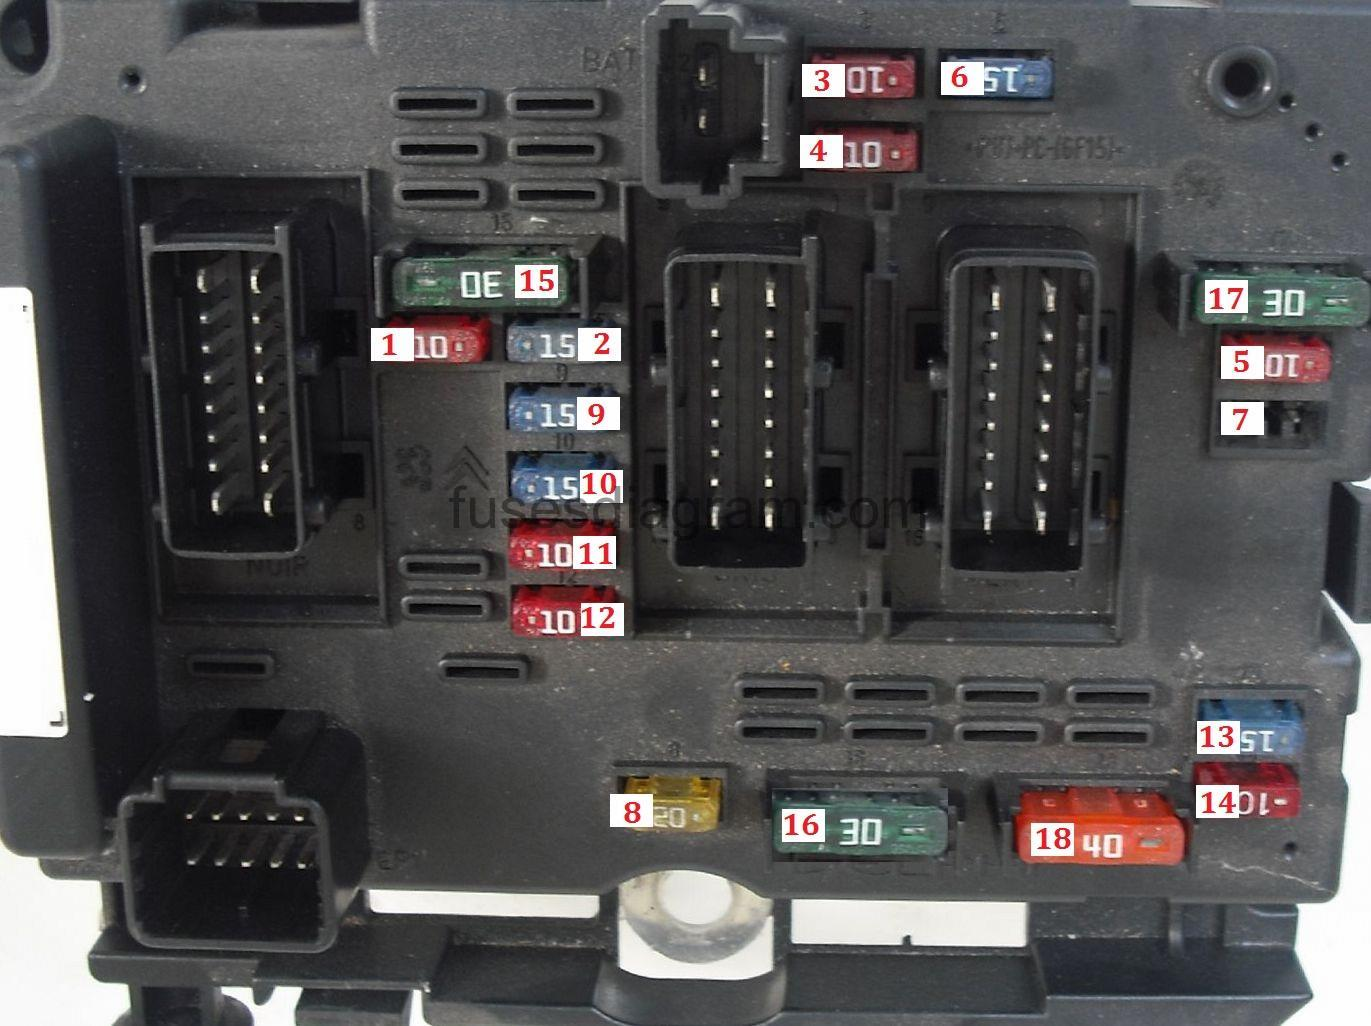 peugeot 106 zest 2 fuse box 99cd6c peugeot 106 zest fuse box wiring resources  99cd6c peugeot 106 zest fuse box